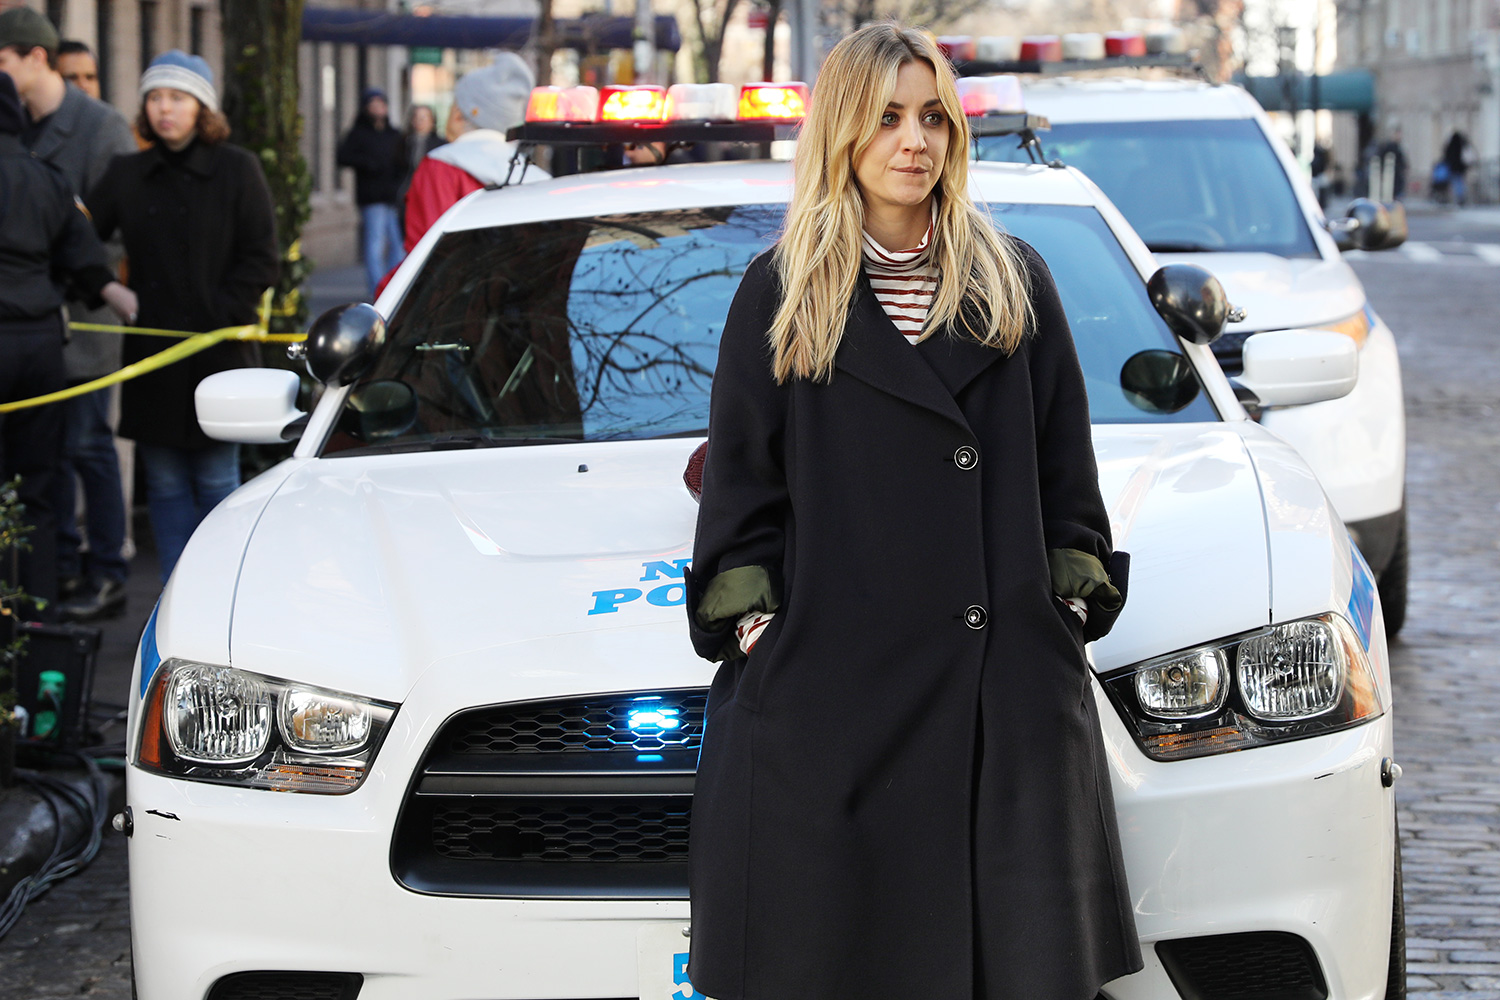 """Kaley Cuoco pictured drinking vodka from a tiny bottle as she leans in front of a police car during a scene at """"The Flight Attendant"""" set in Downtown, Manhattan"""